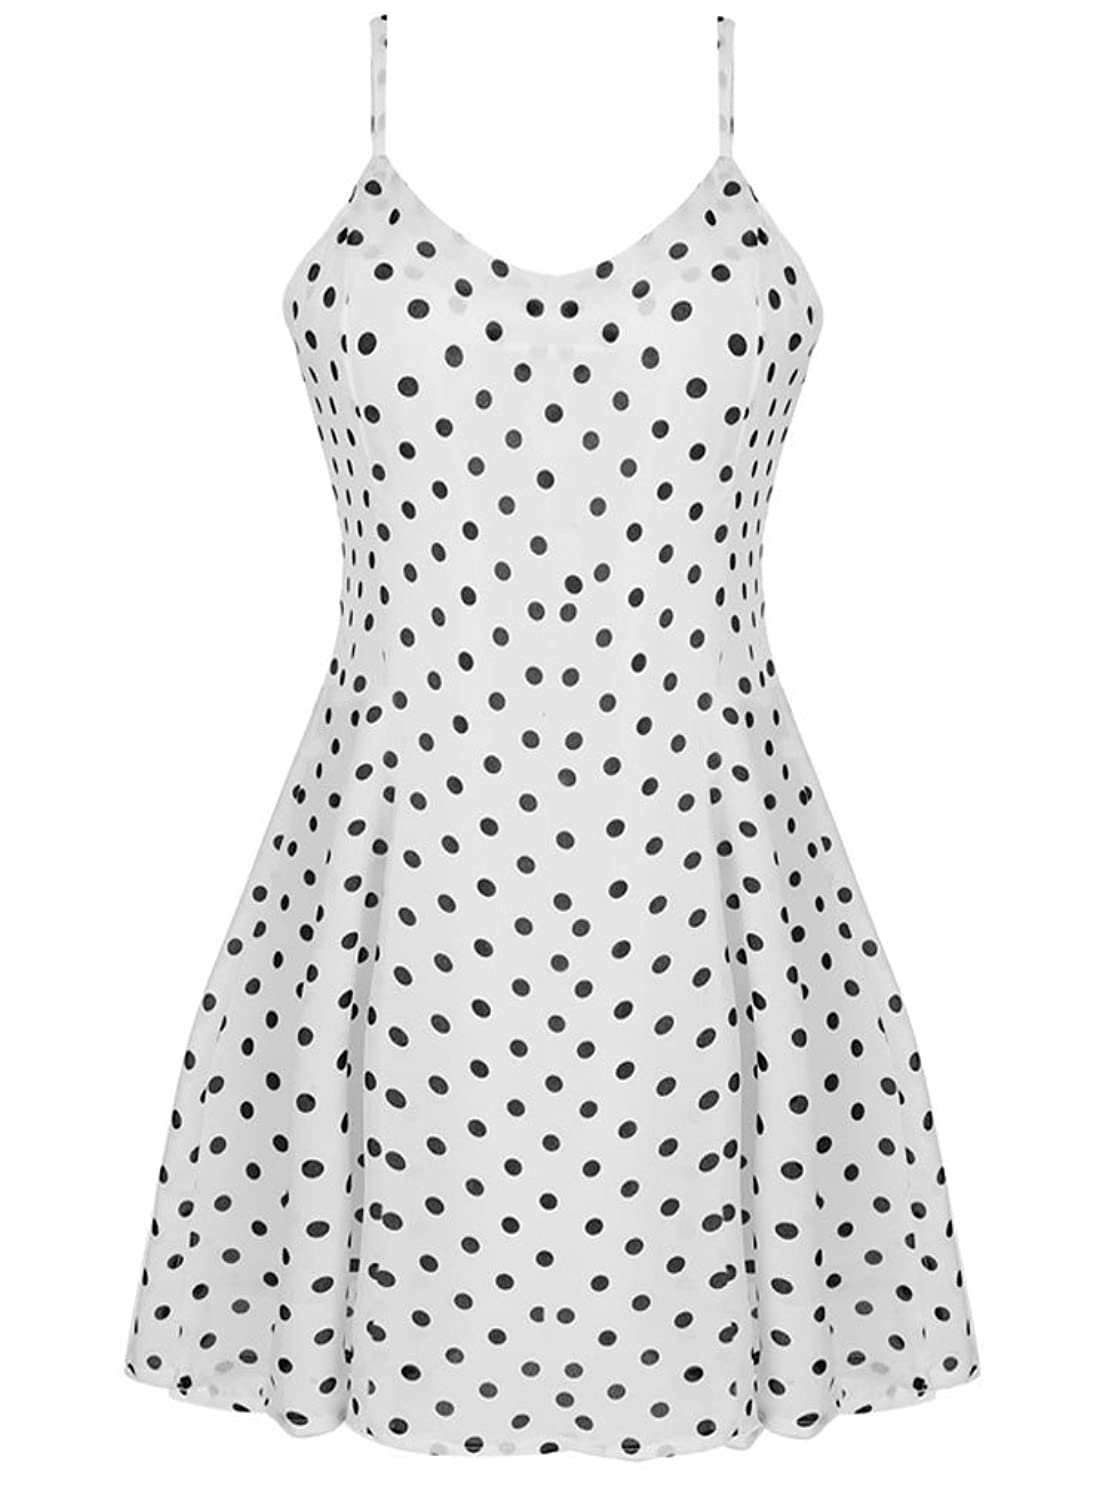 OURS Women's Polka Dot Spaghetti Strap Chiffon Pleated Casual Party Dress these days are ours